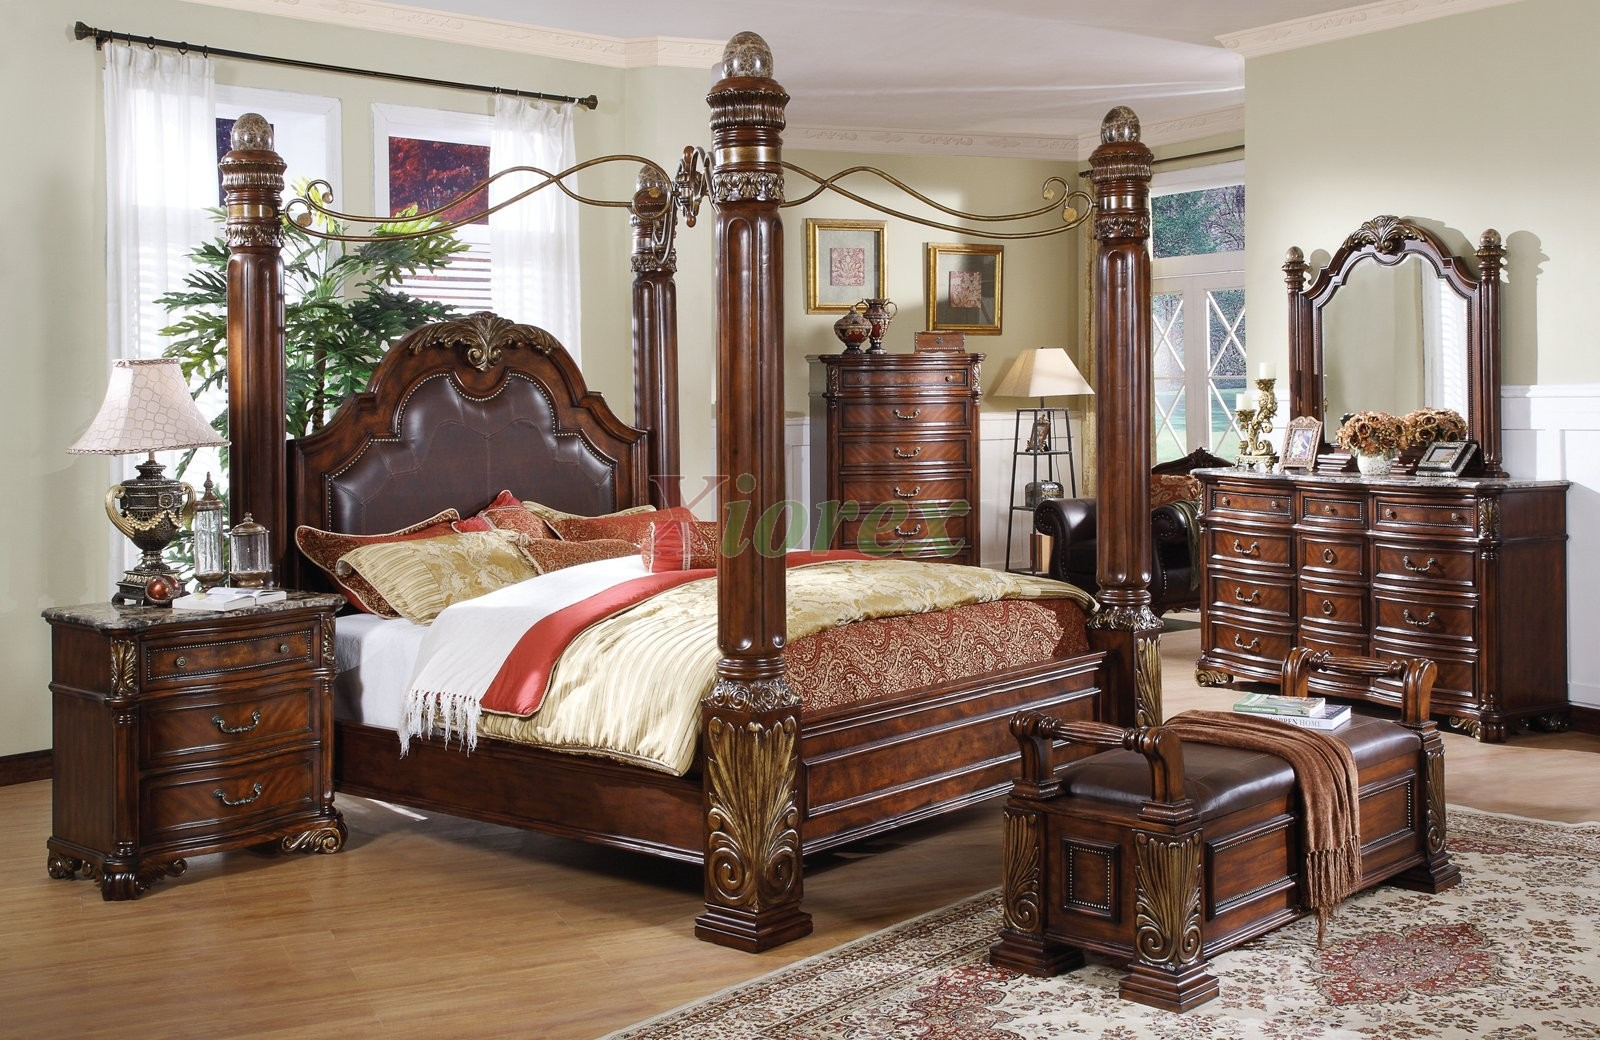 Canopy bed sets bedroom furniture sets w poster canopy for Traditional bedroom furniture